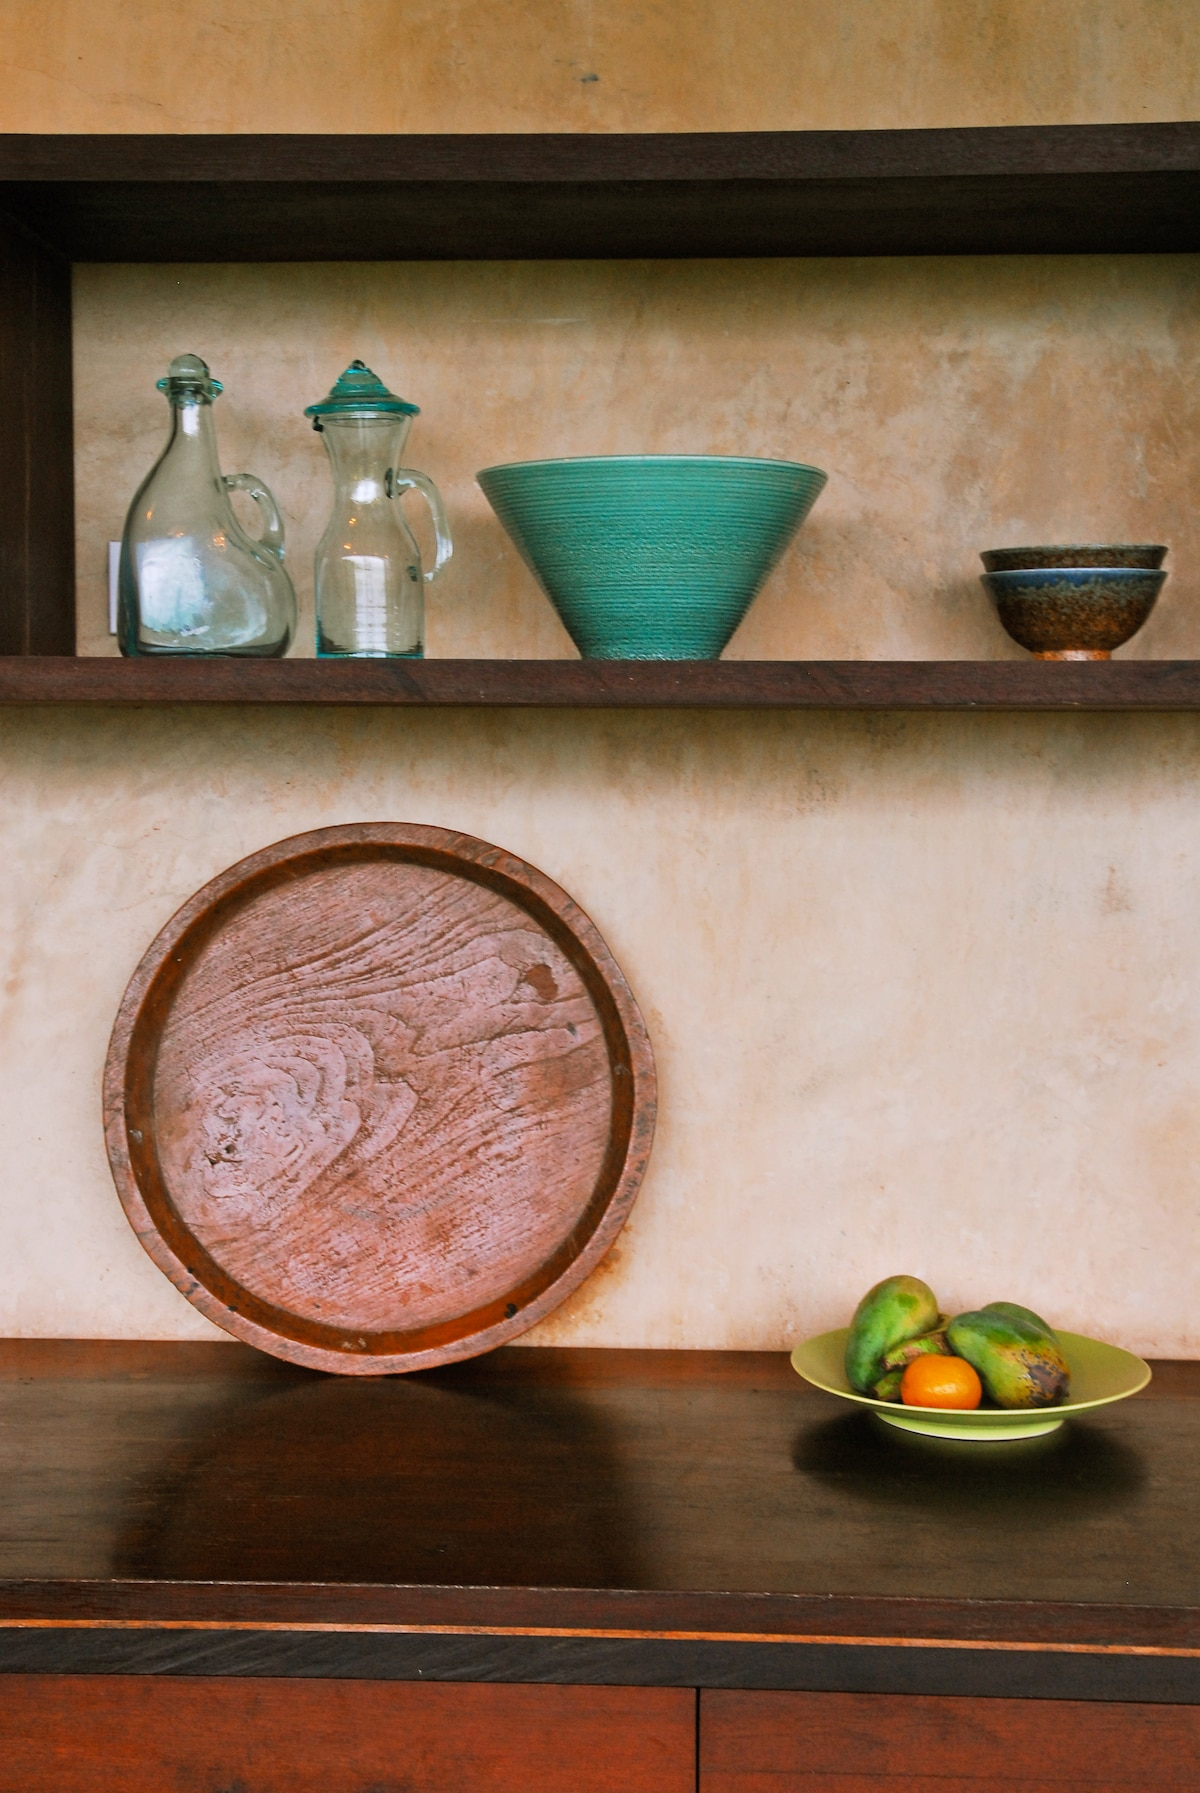 The kitchen cabinets are made from reclaimed wood